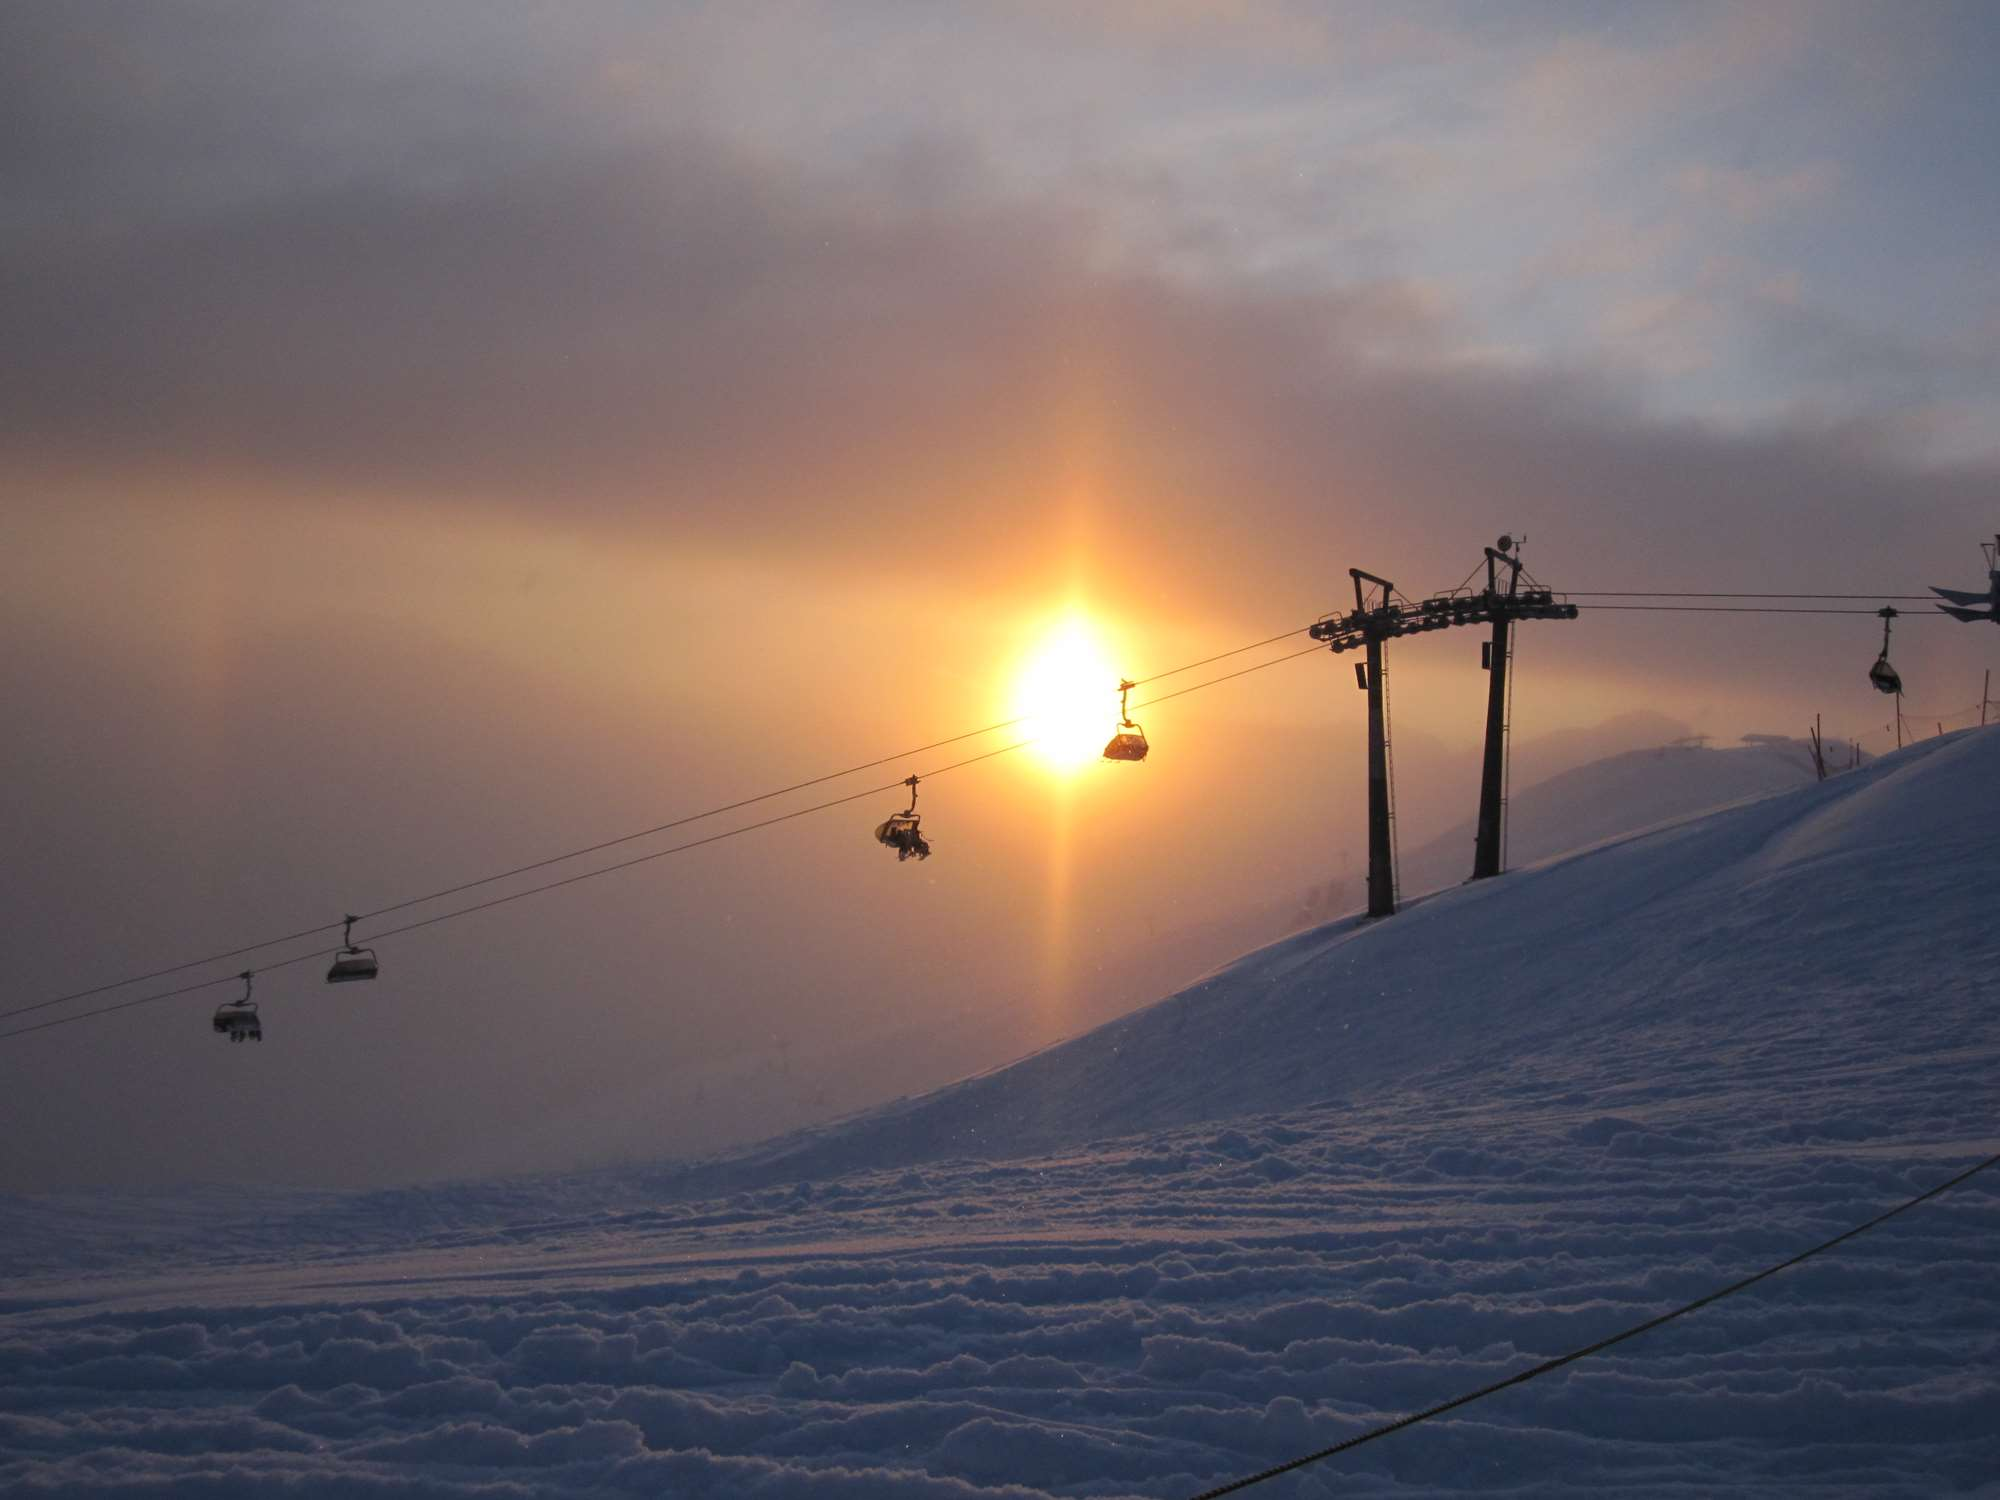 Chairlift and sunset in Saalbach